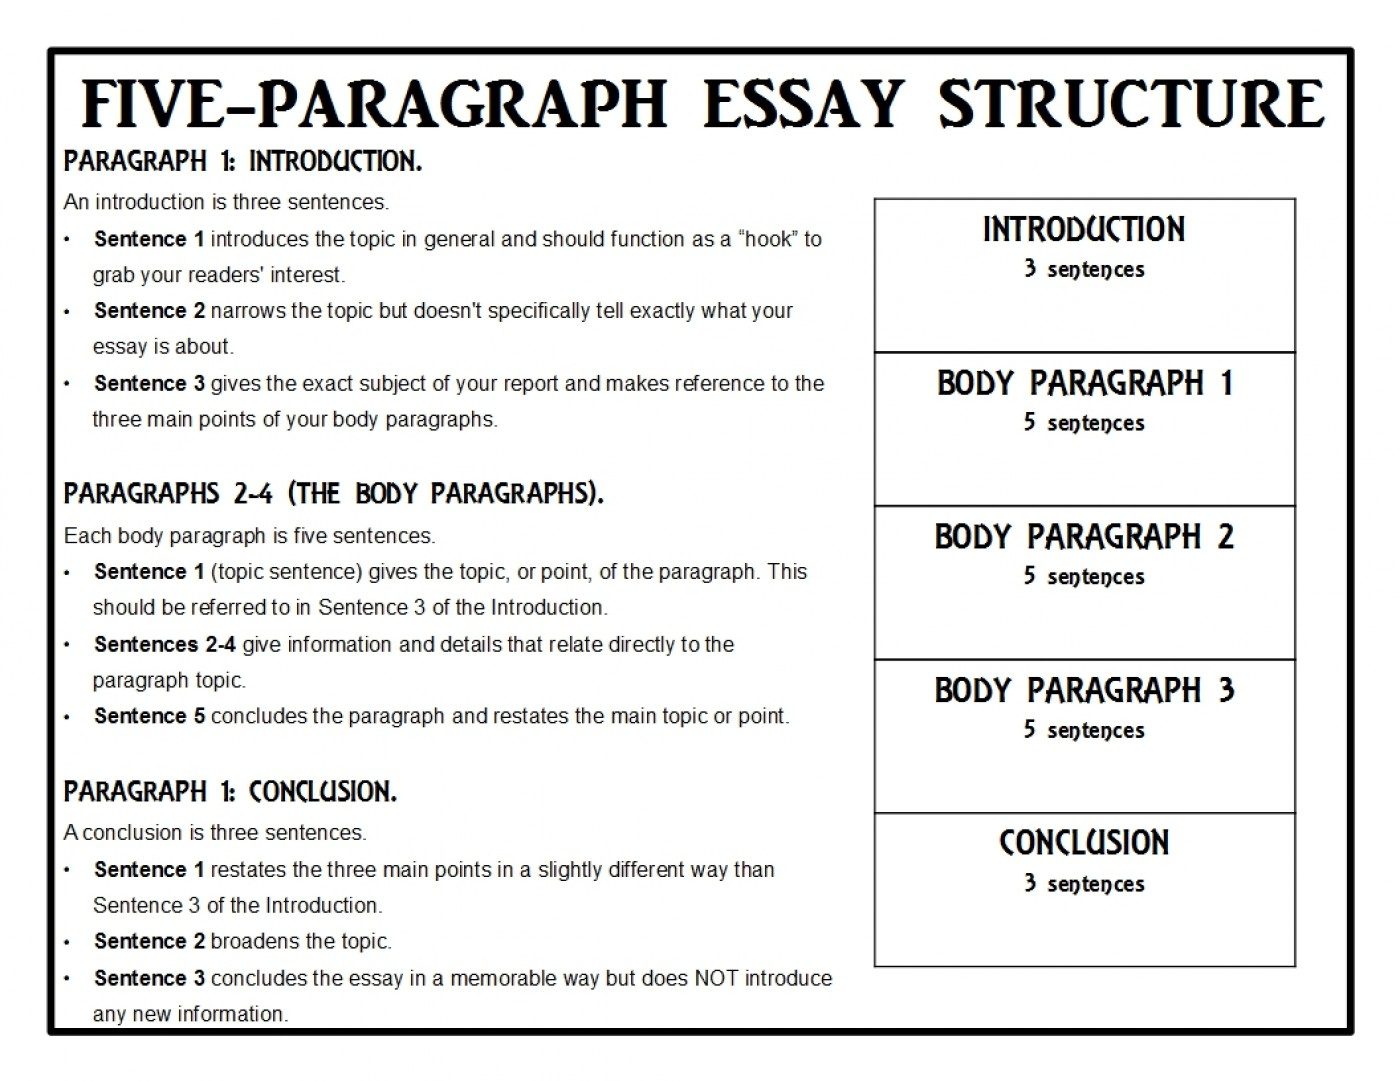 015 Animalreport1 Paragraph Essay Singular 5 Template Graphic Organizer Middle School Pdf College 1400